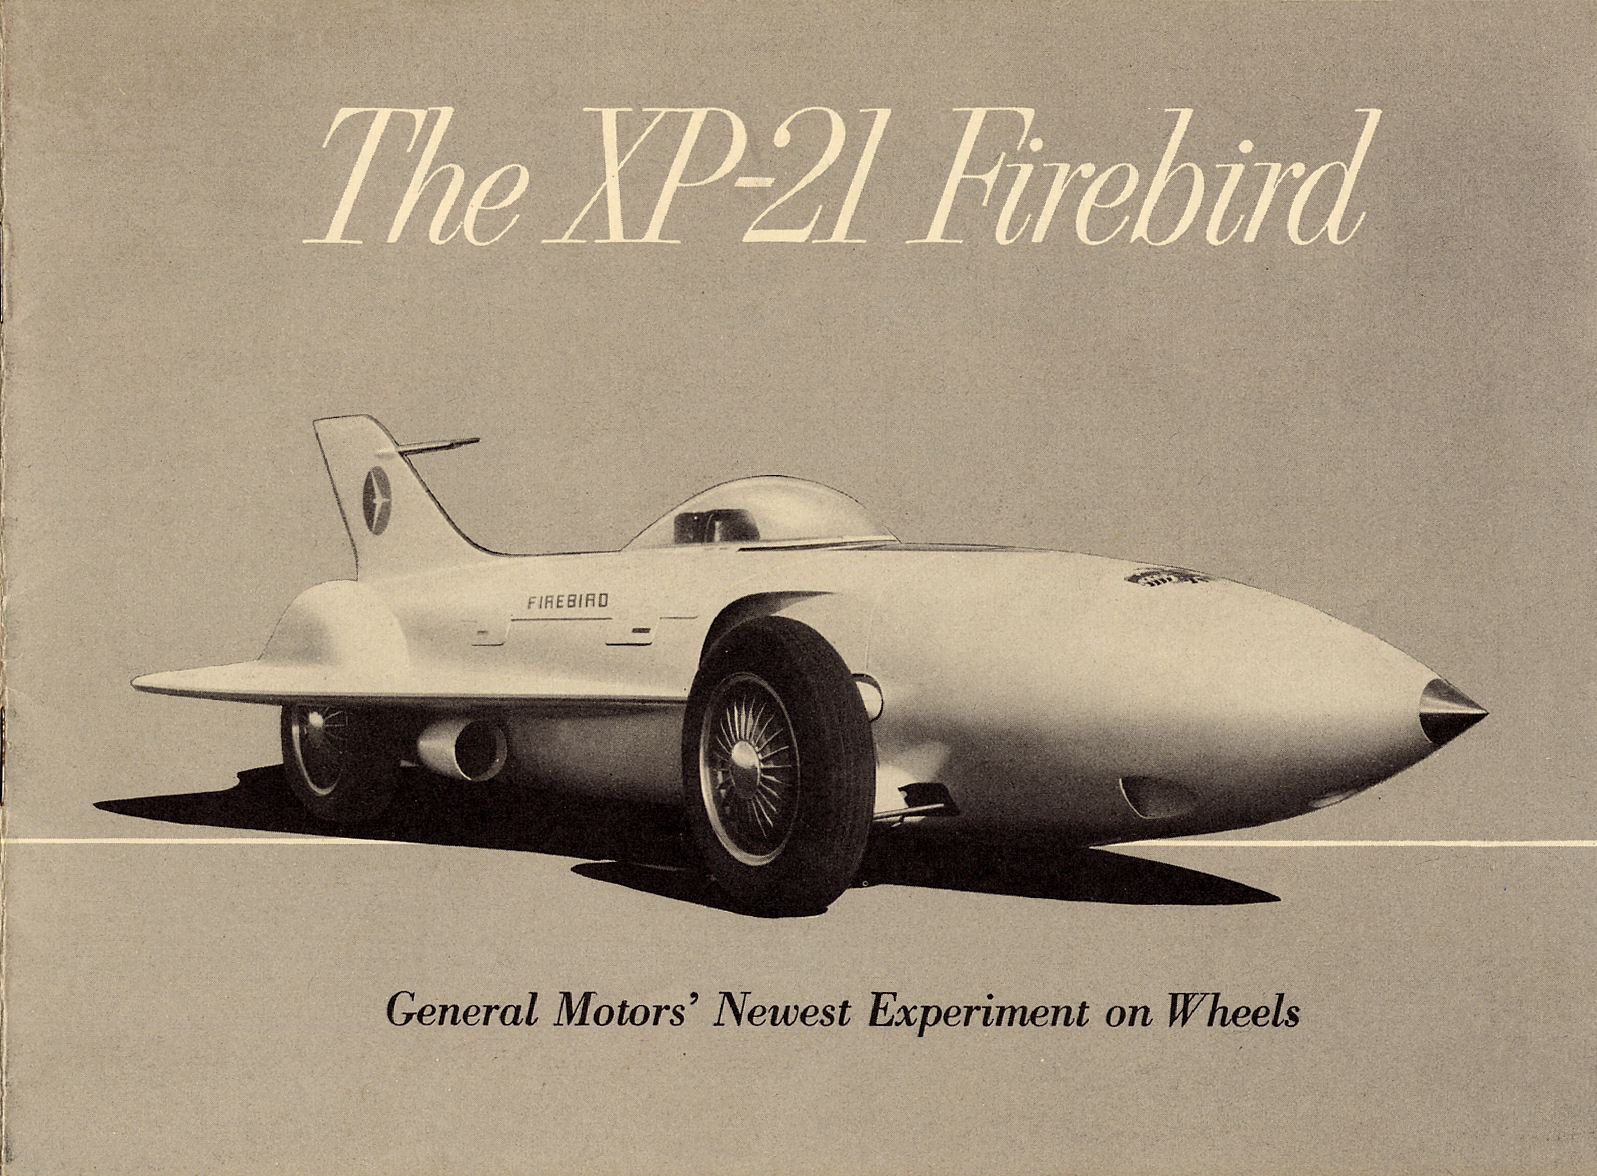 Old Car Dealers >> Directory Index: GM Corporate and Concepts/1954 XP-21 Firebird